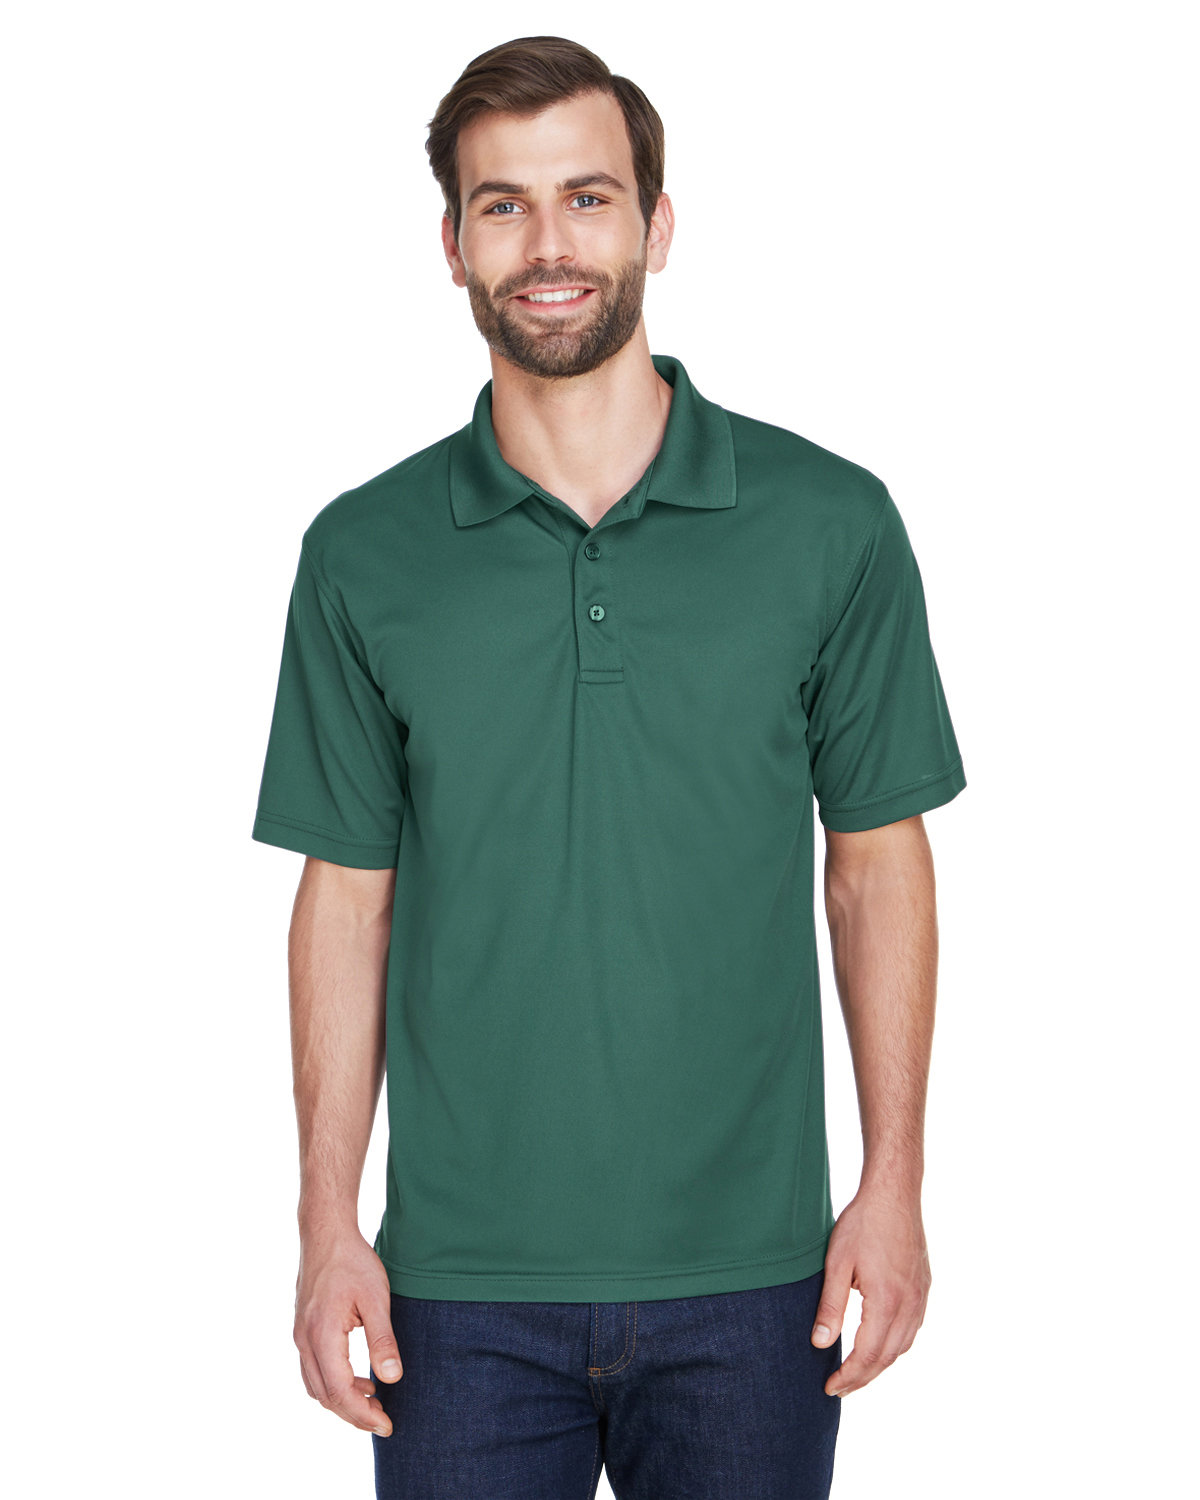 UltraClub Men's Cool & Dry MeshPiqué Polo FOREST GREEN